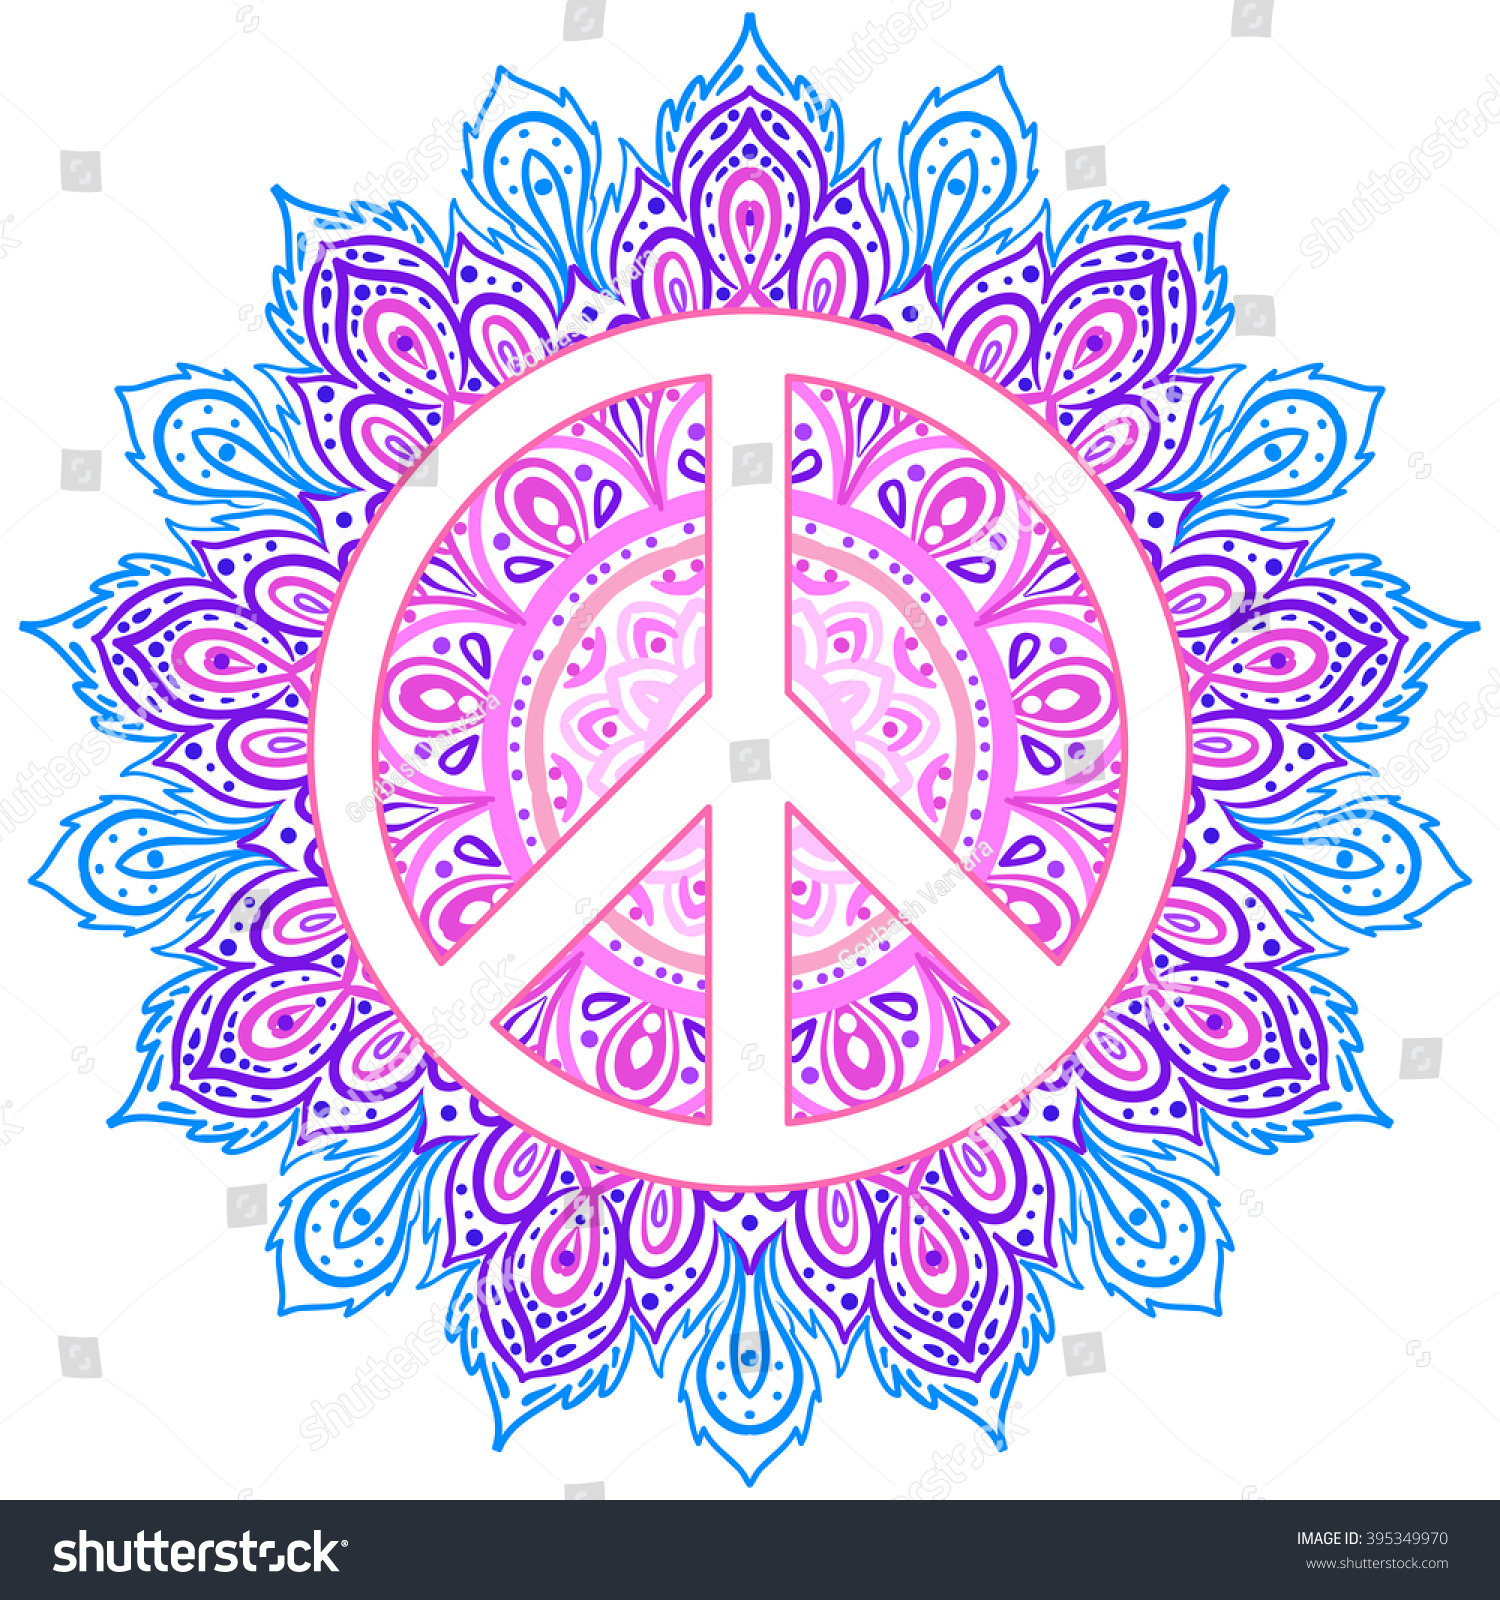 Peace symbol over decorative ornate background stock for Peace sign mandala coloring pages